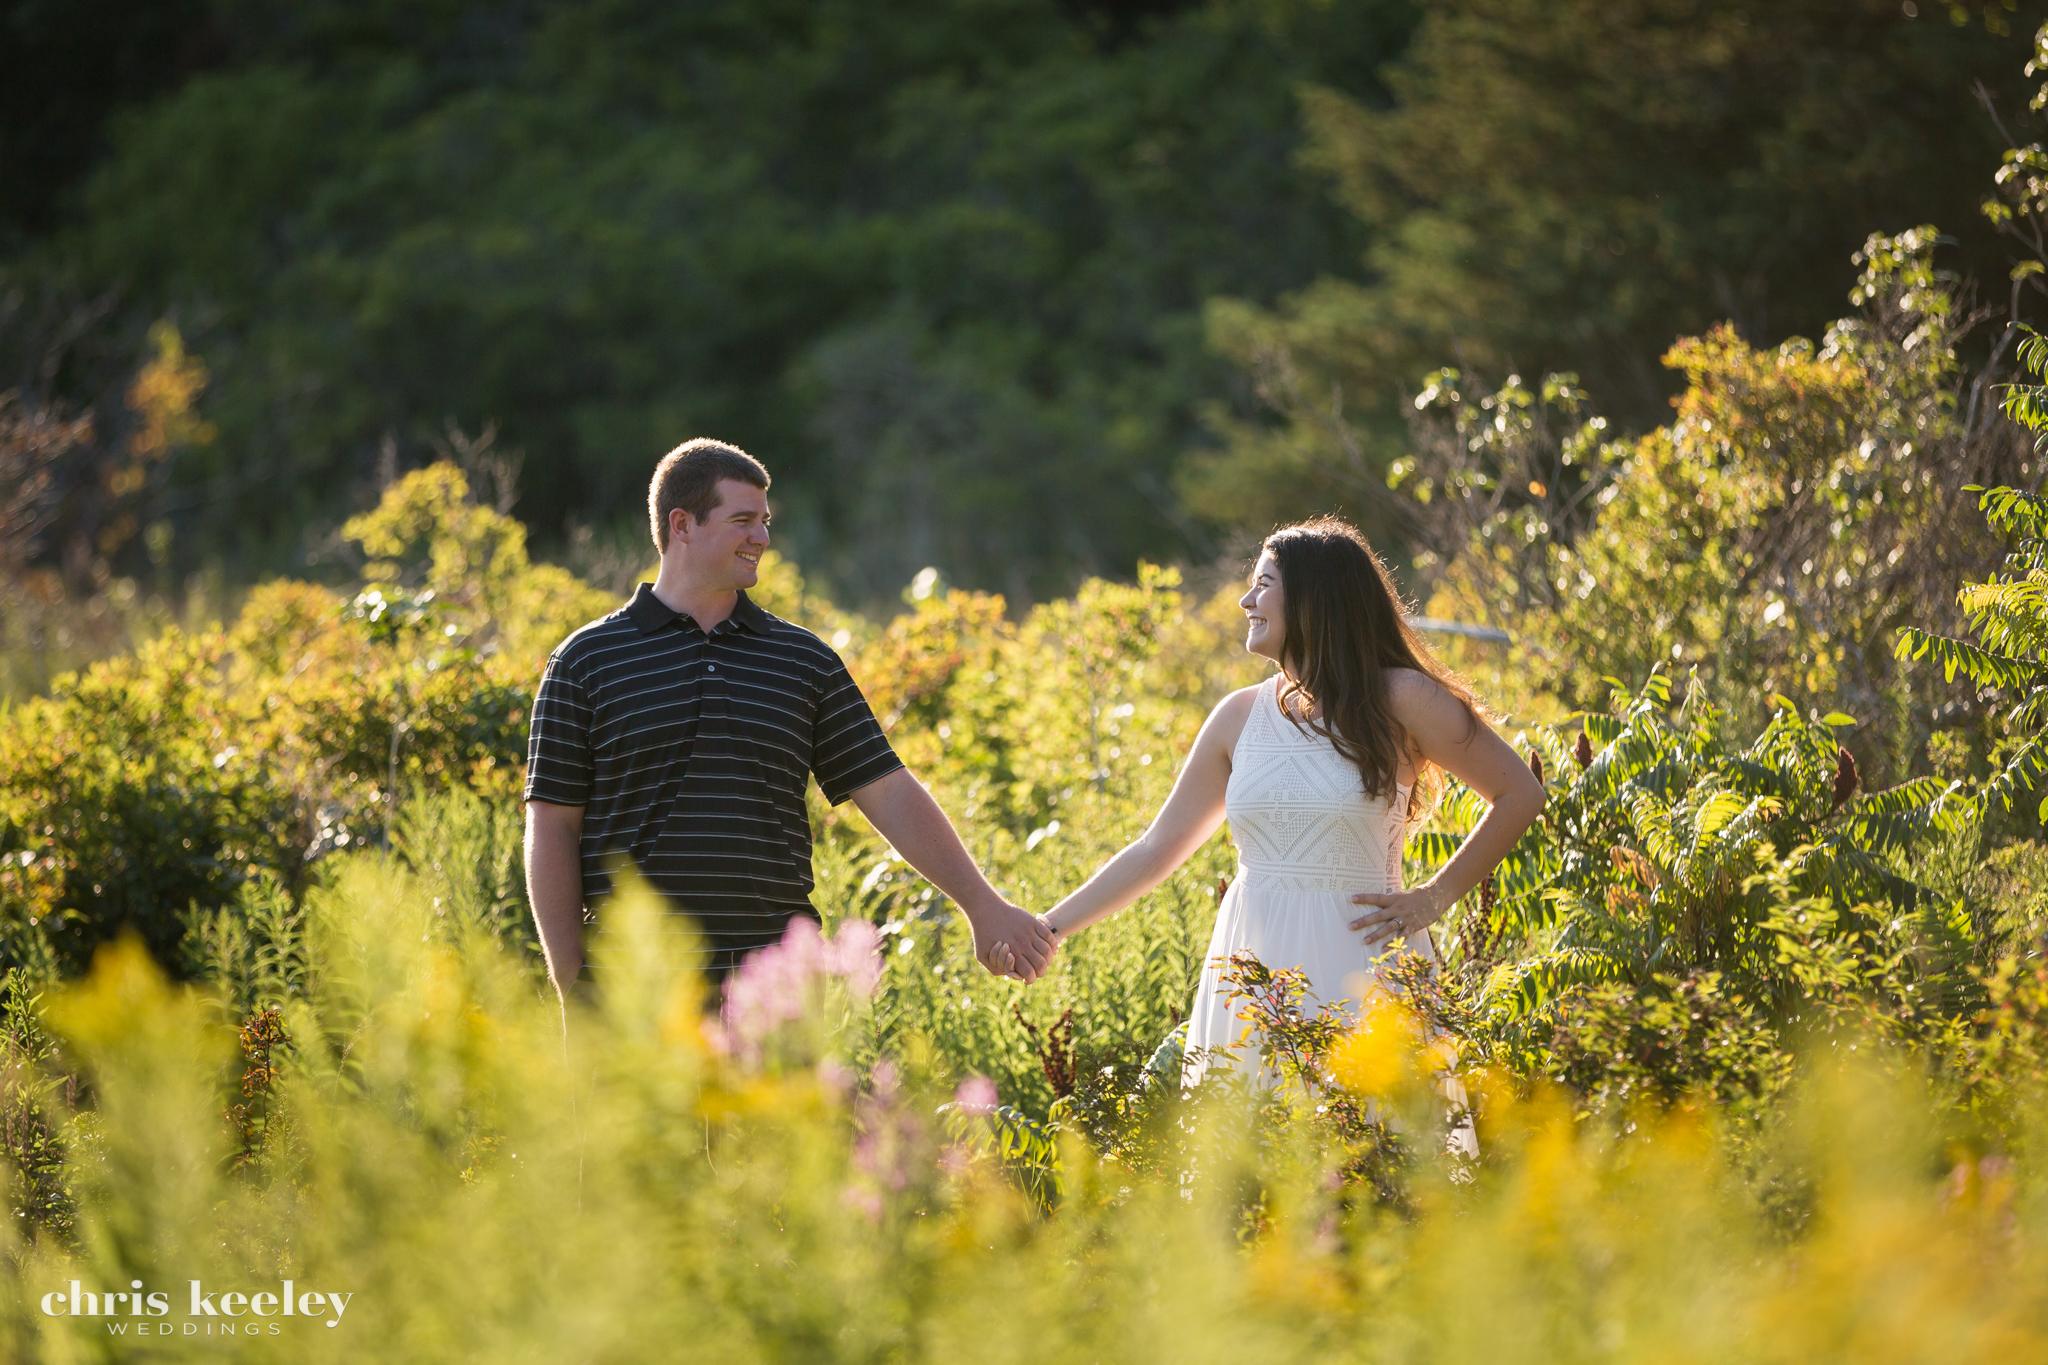 09-engagement-wedding-pictures-rye-new-hampshire-chris-keeley-weddings.jpg